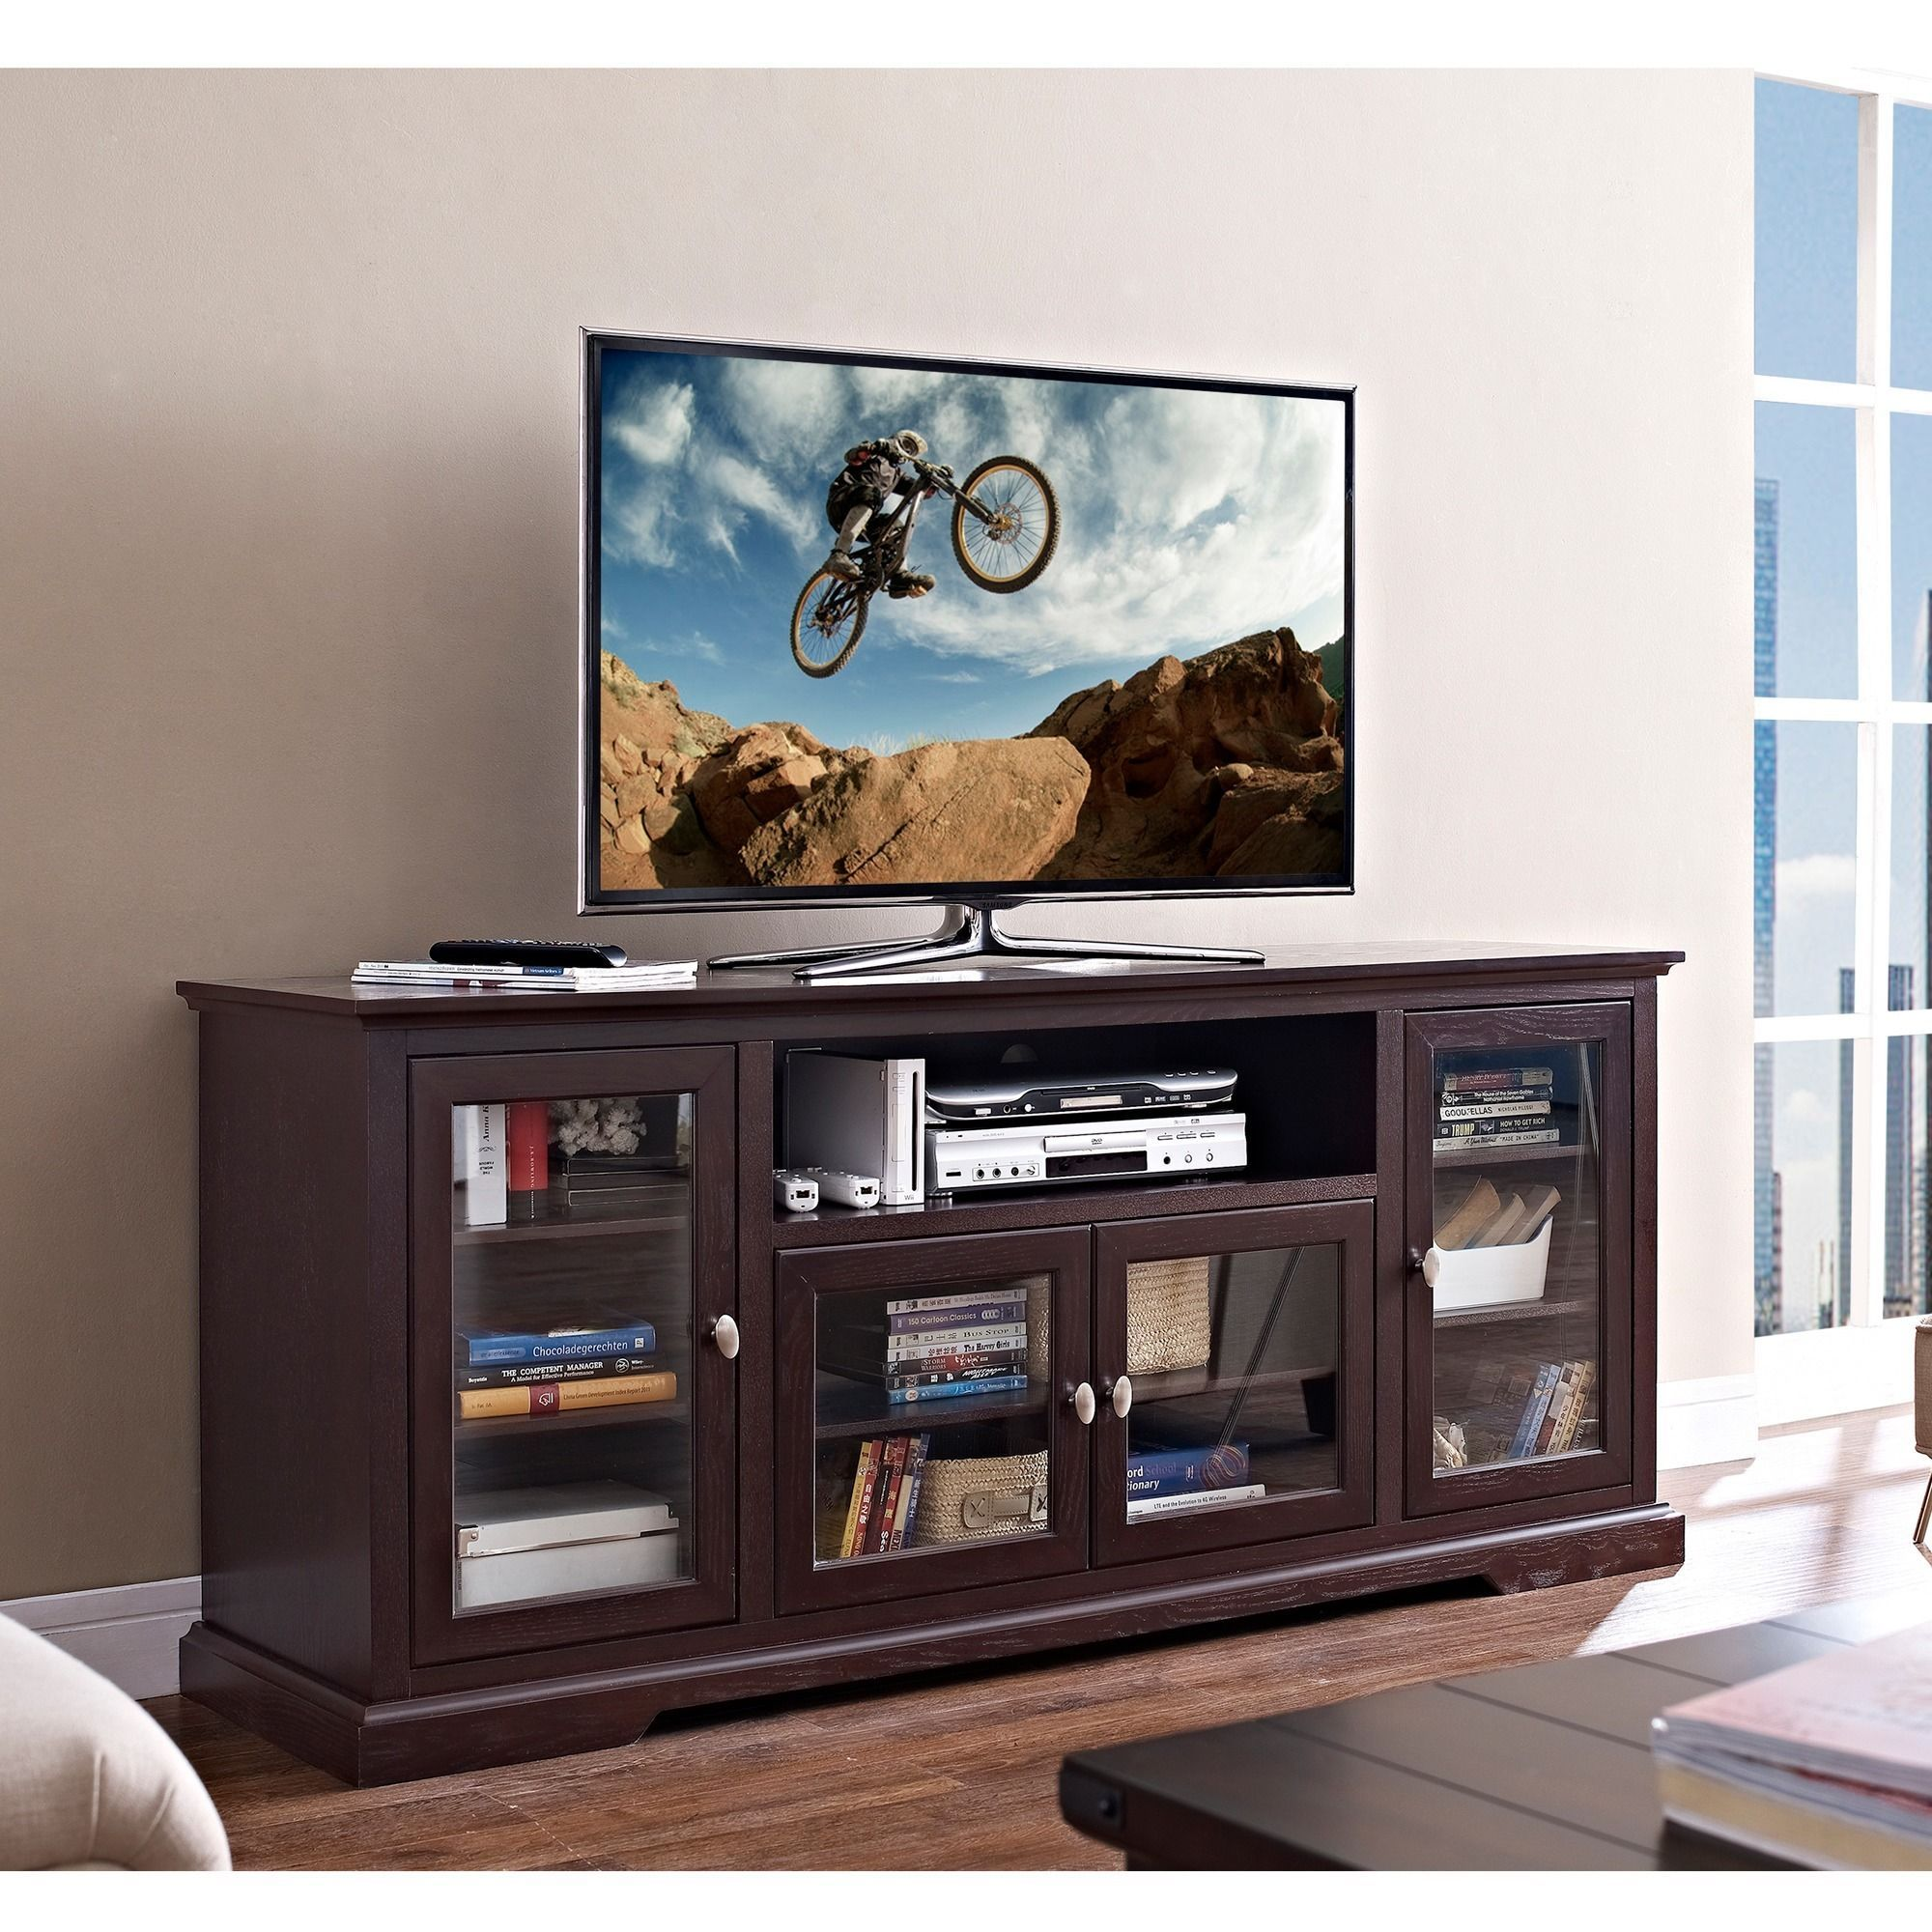 Online Shopping Bedding Furniture Electronics Jewelry Clothing More Tv Stand Wood Tv Stand Wood Tv Stand Rustic